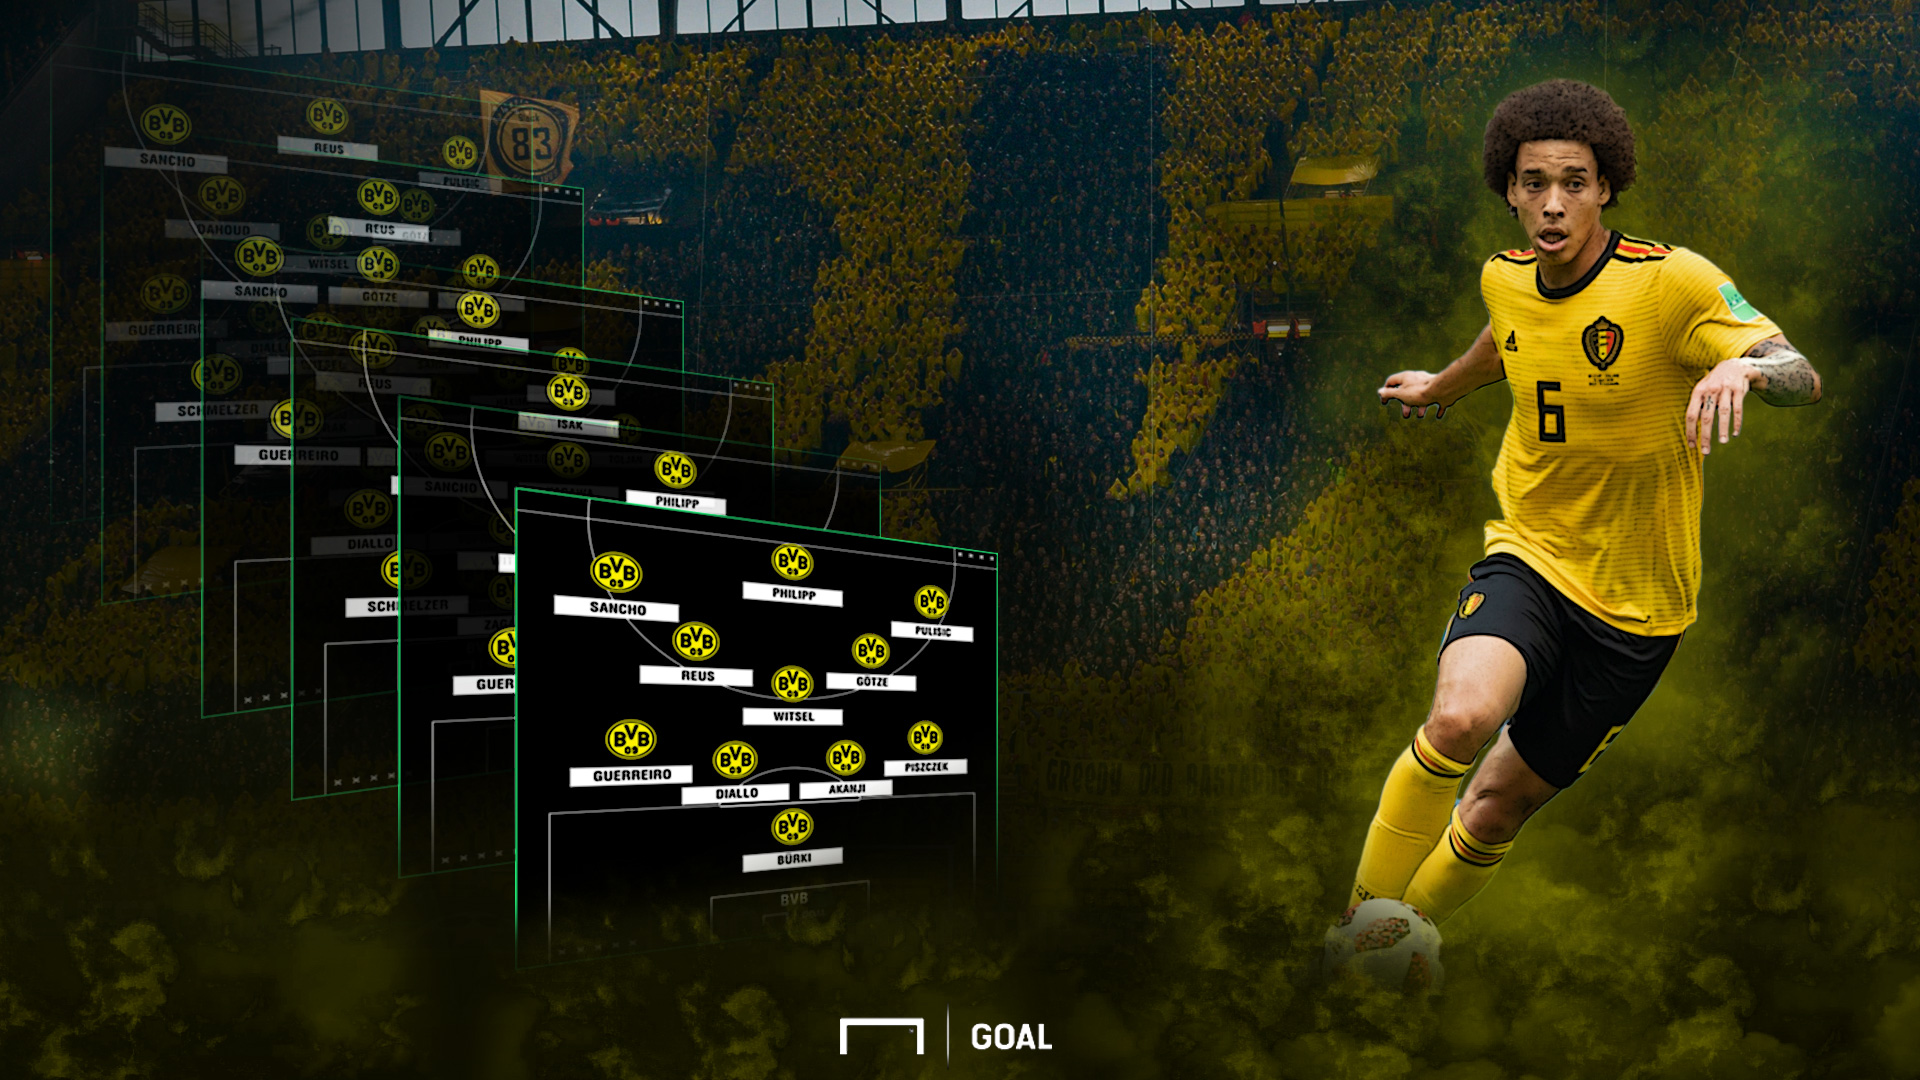 GFX Borussia Dortmund can play BVB with Axel Witsel